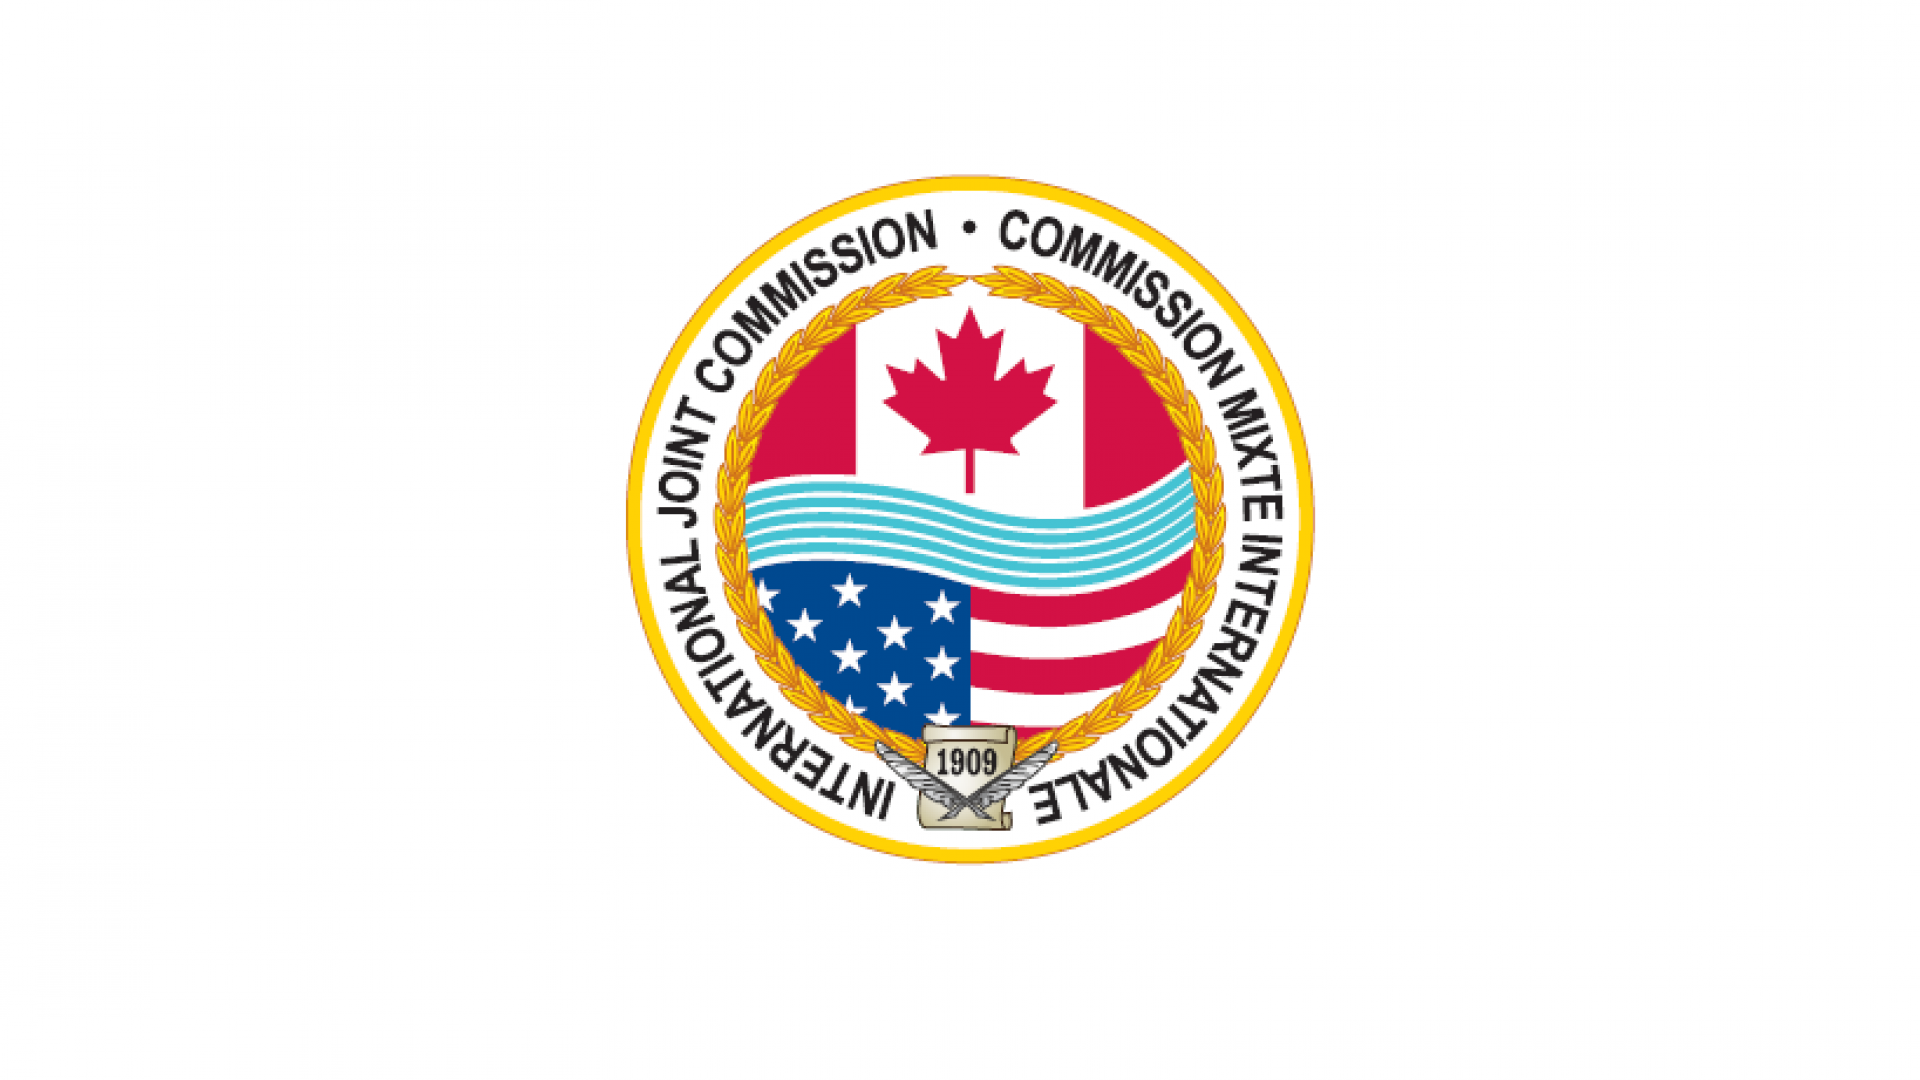 Logo of the International Joint Commission